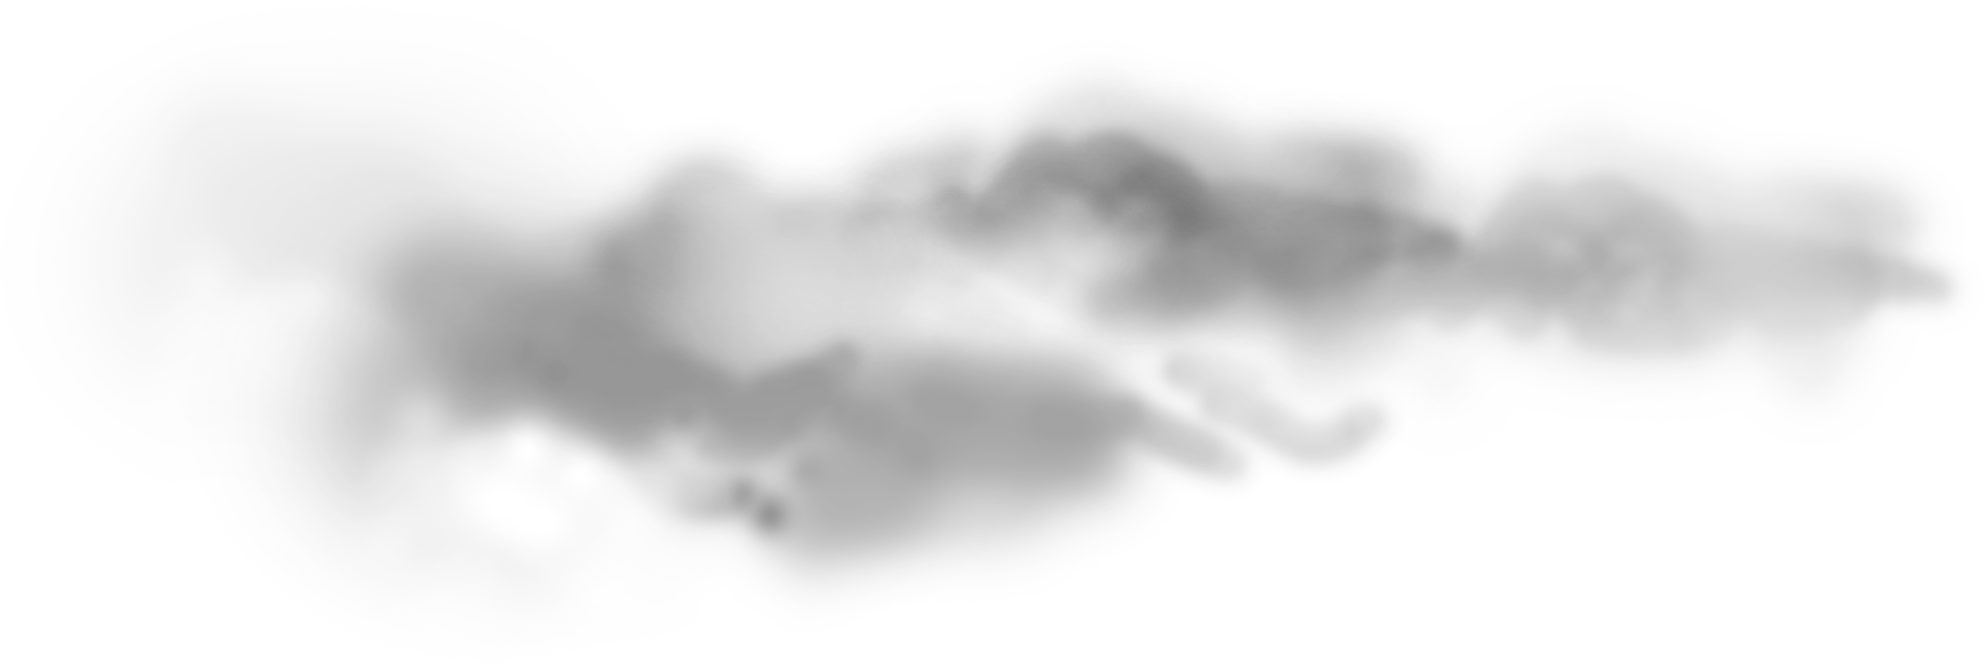 clouds transparent background png